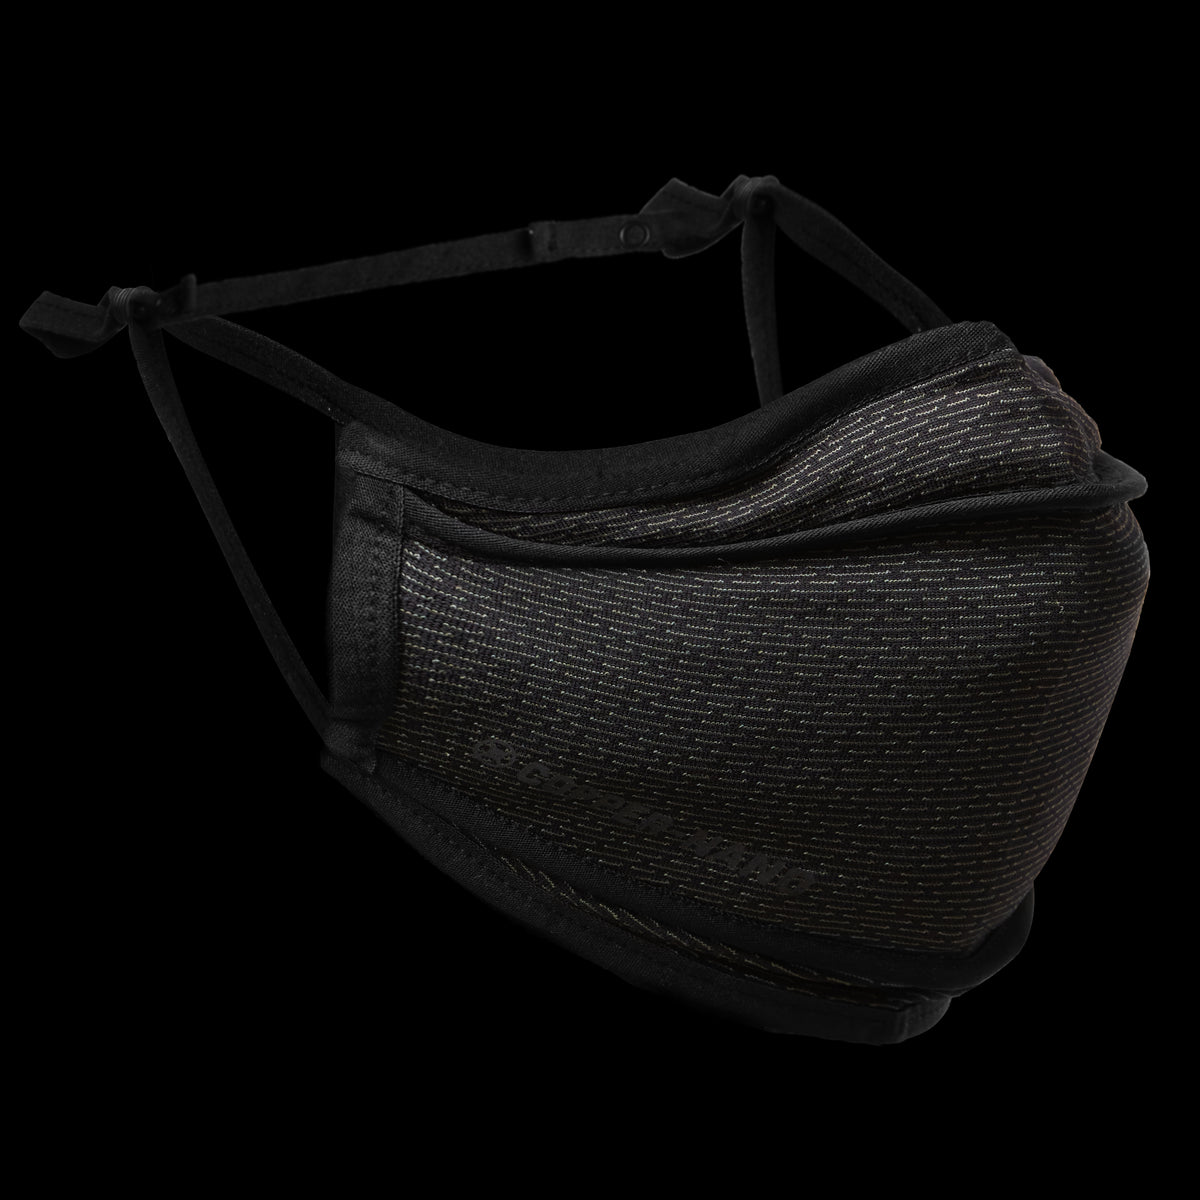 0384. Copper-Nano Tri-Fold Face Mask (with Bag) - Black